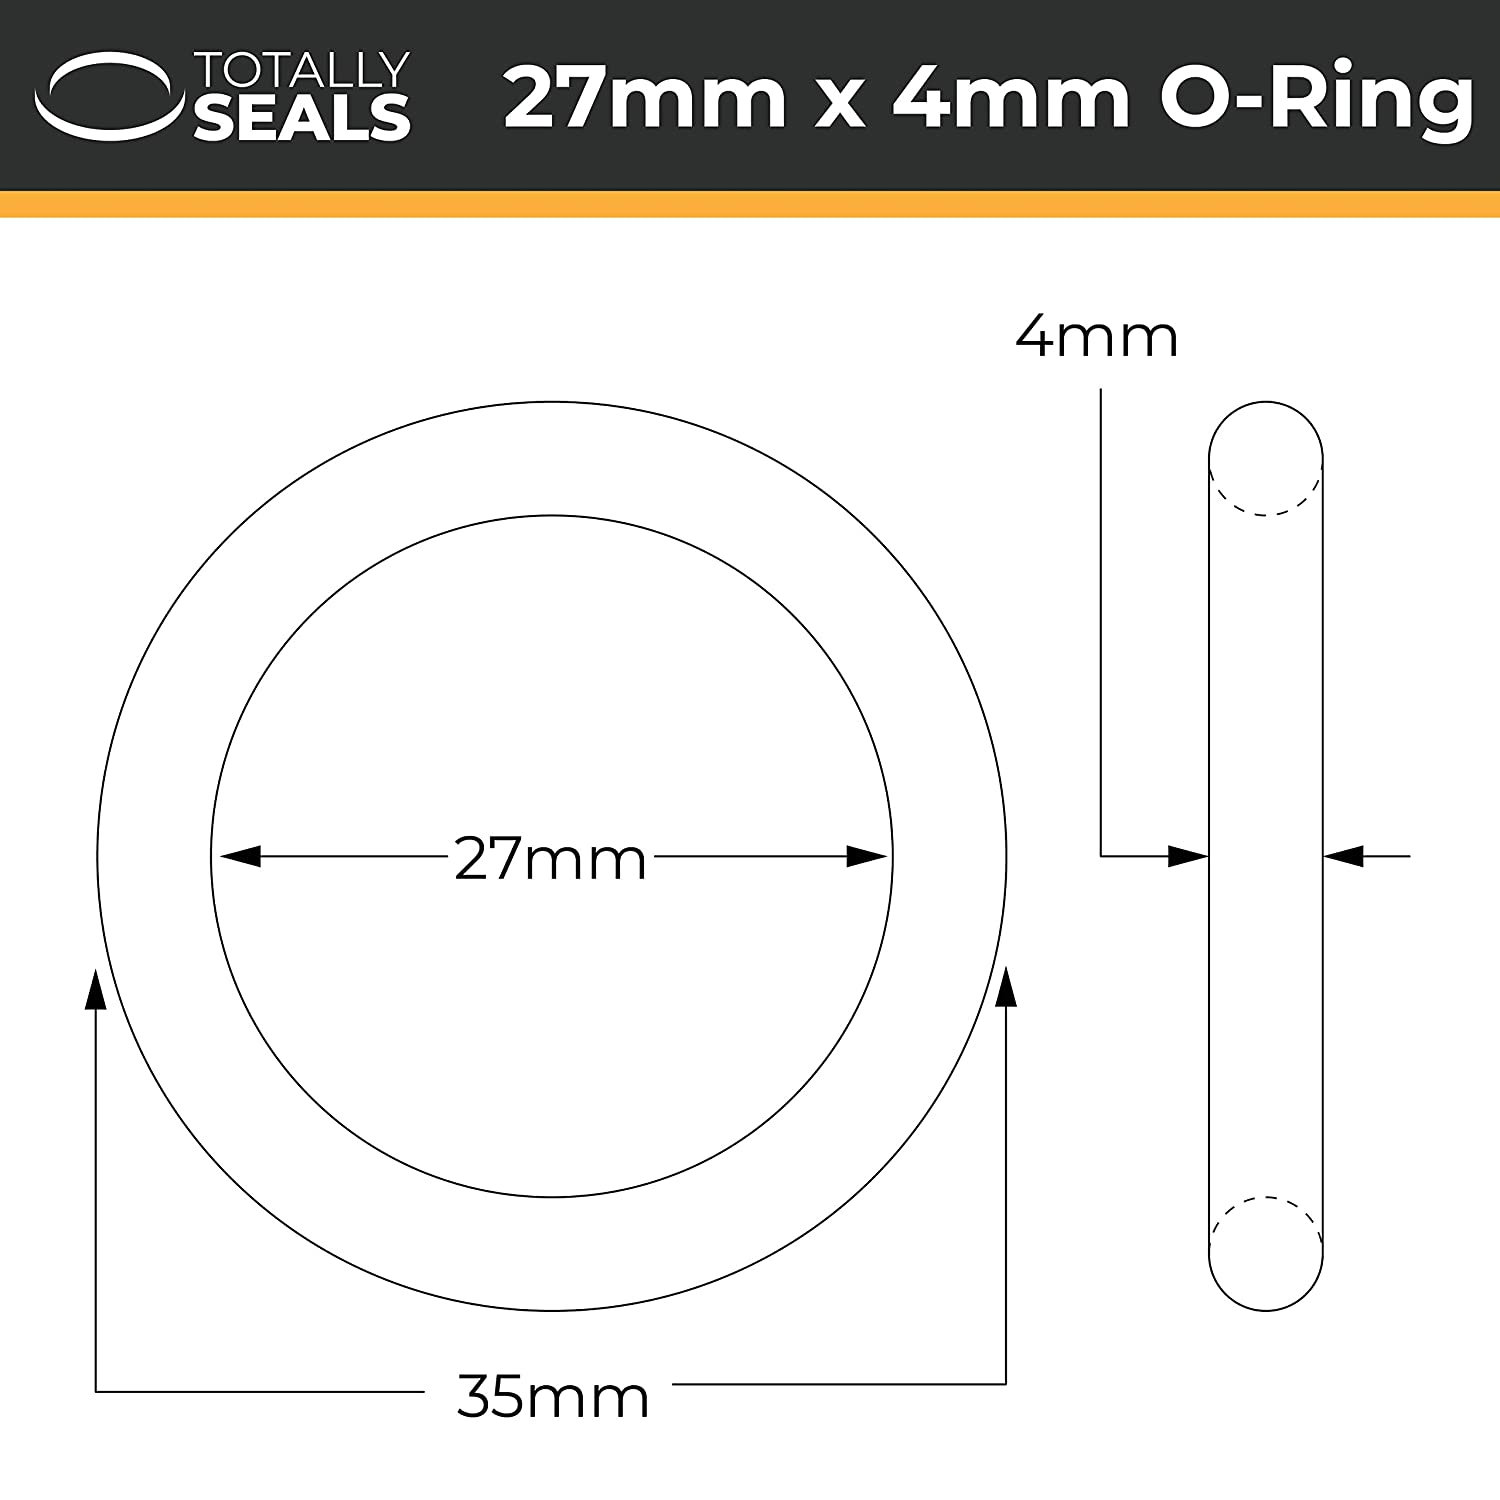 Black Nitrile NBR 27mm x 4mm Pack of 5 70A Shore Hardness 35mm OD Rubber Metric O-Rings